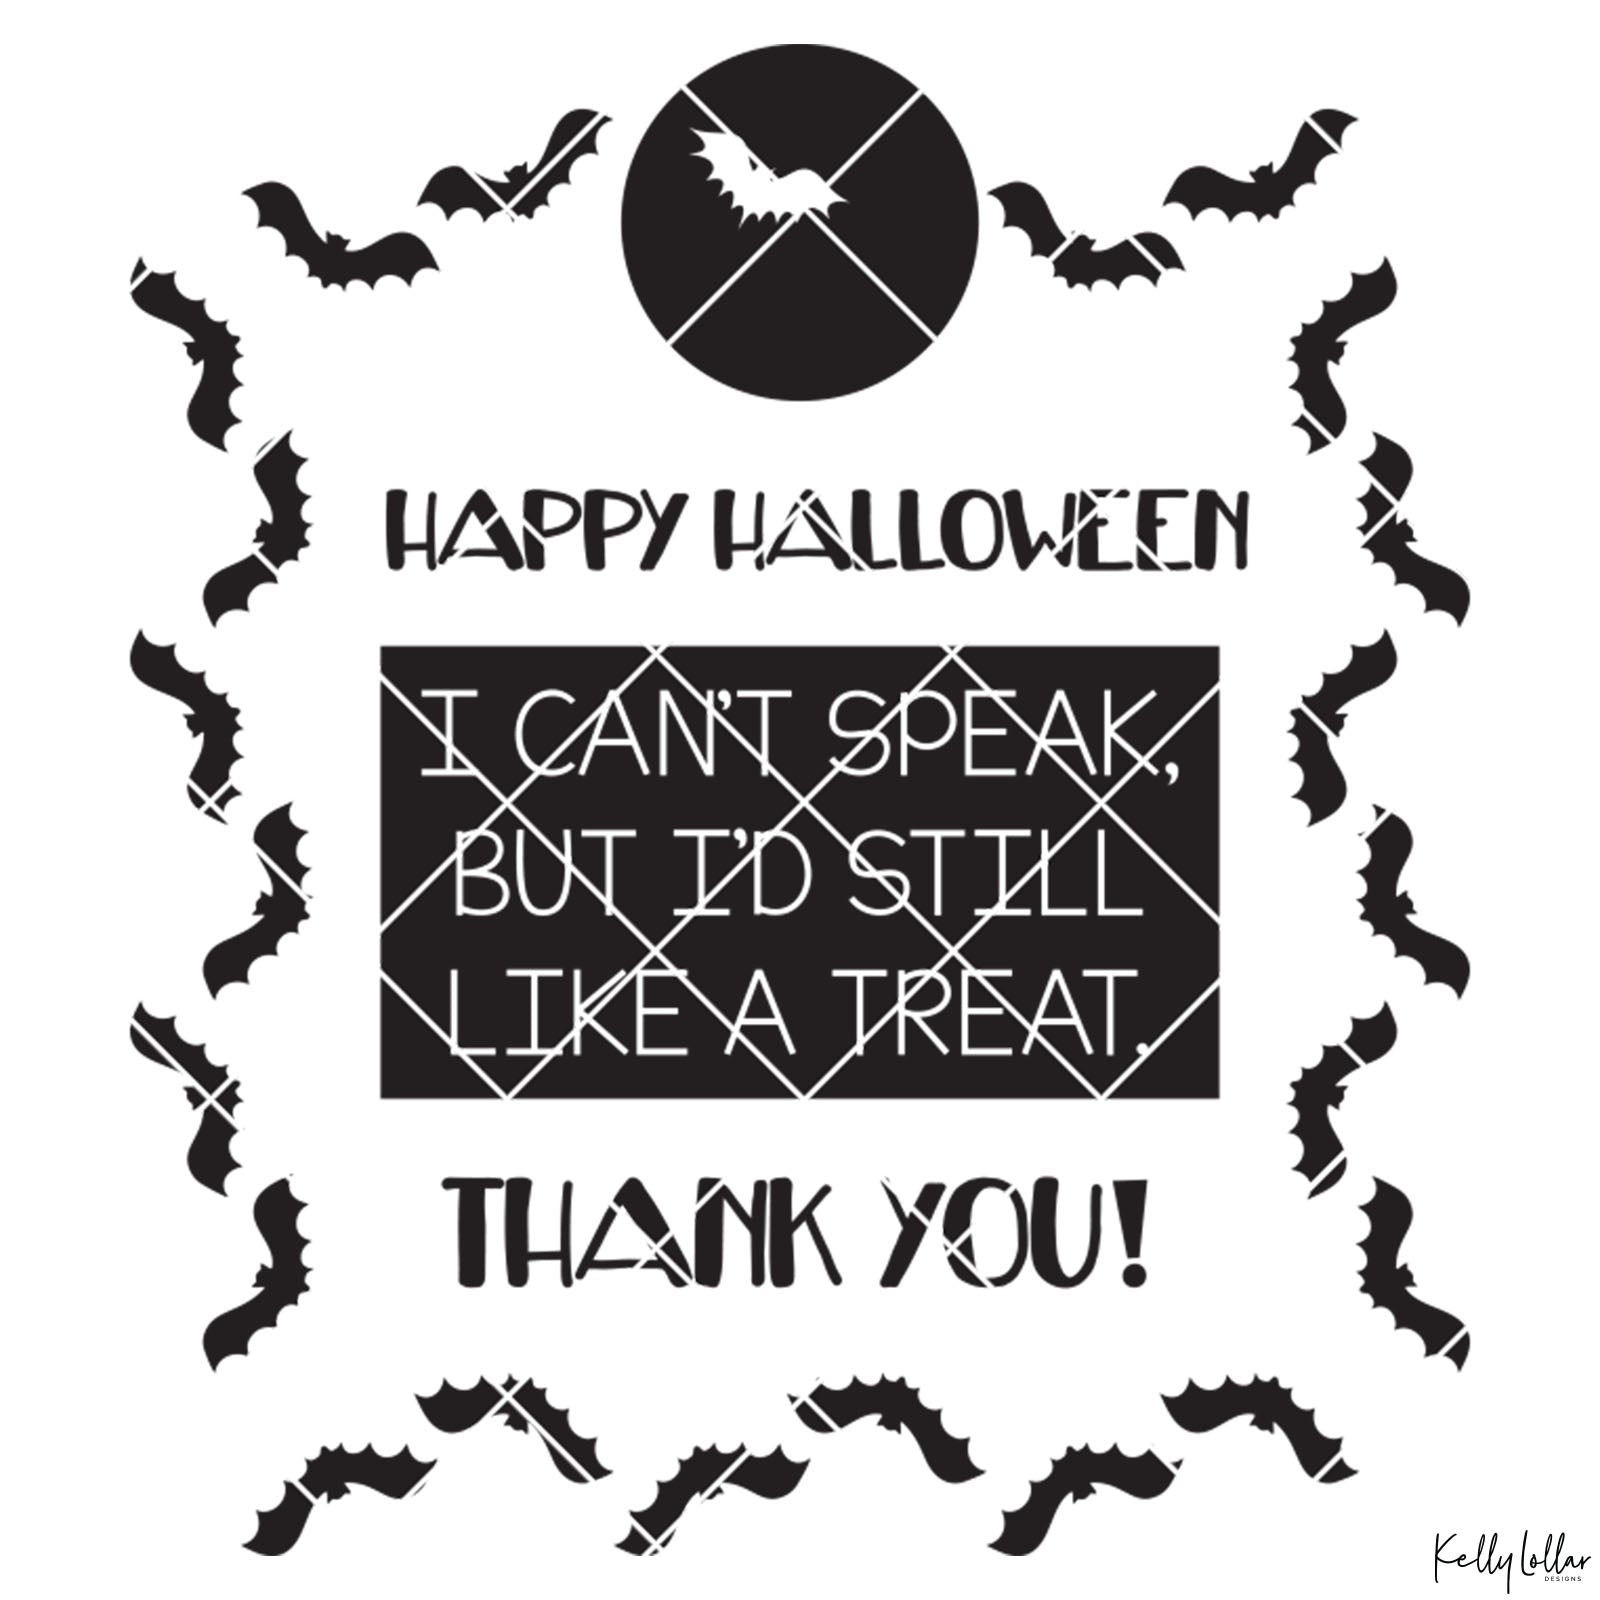 Non-Verbal Trick or Treat Bag Design with Bats | SVG DXF PNG Cut Files | Free for Commercial Use